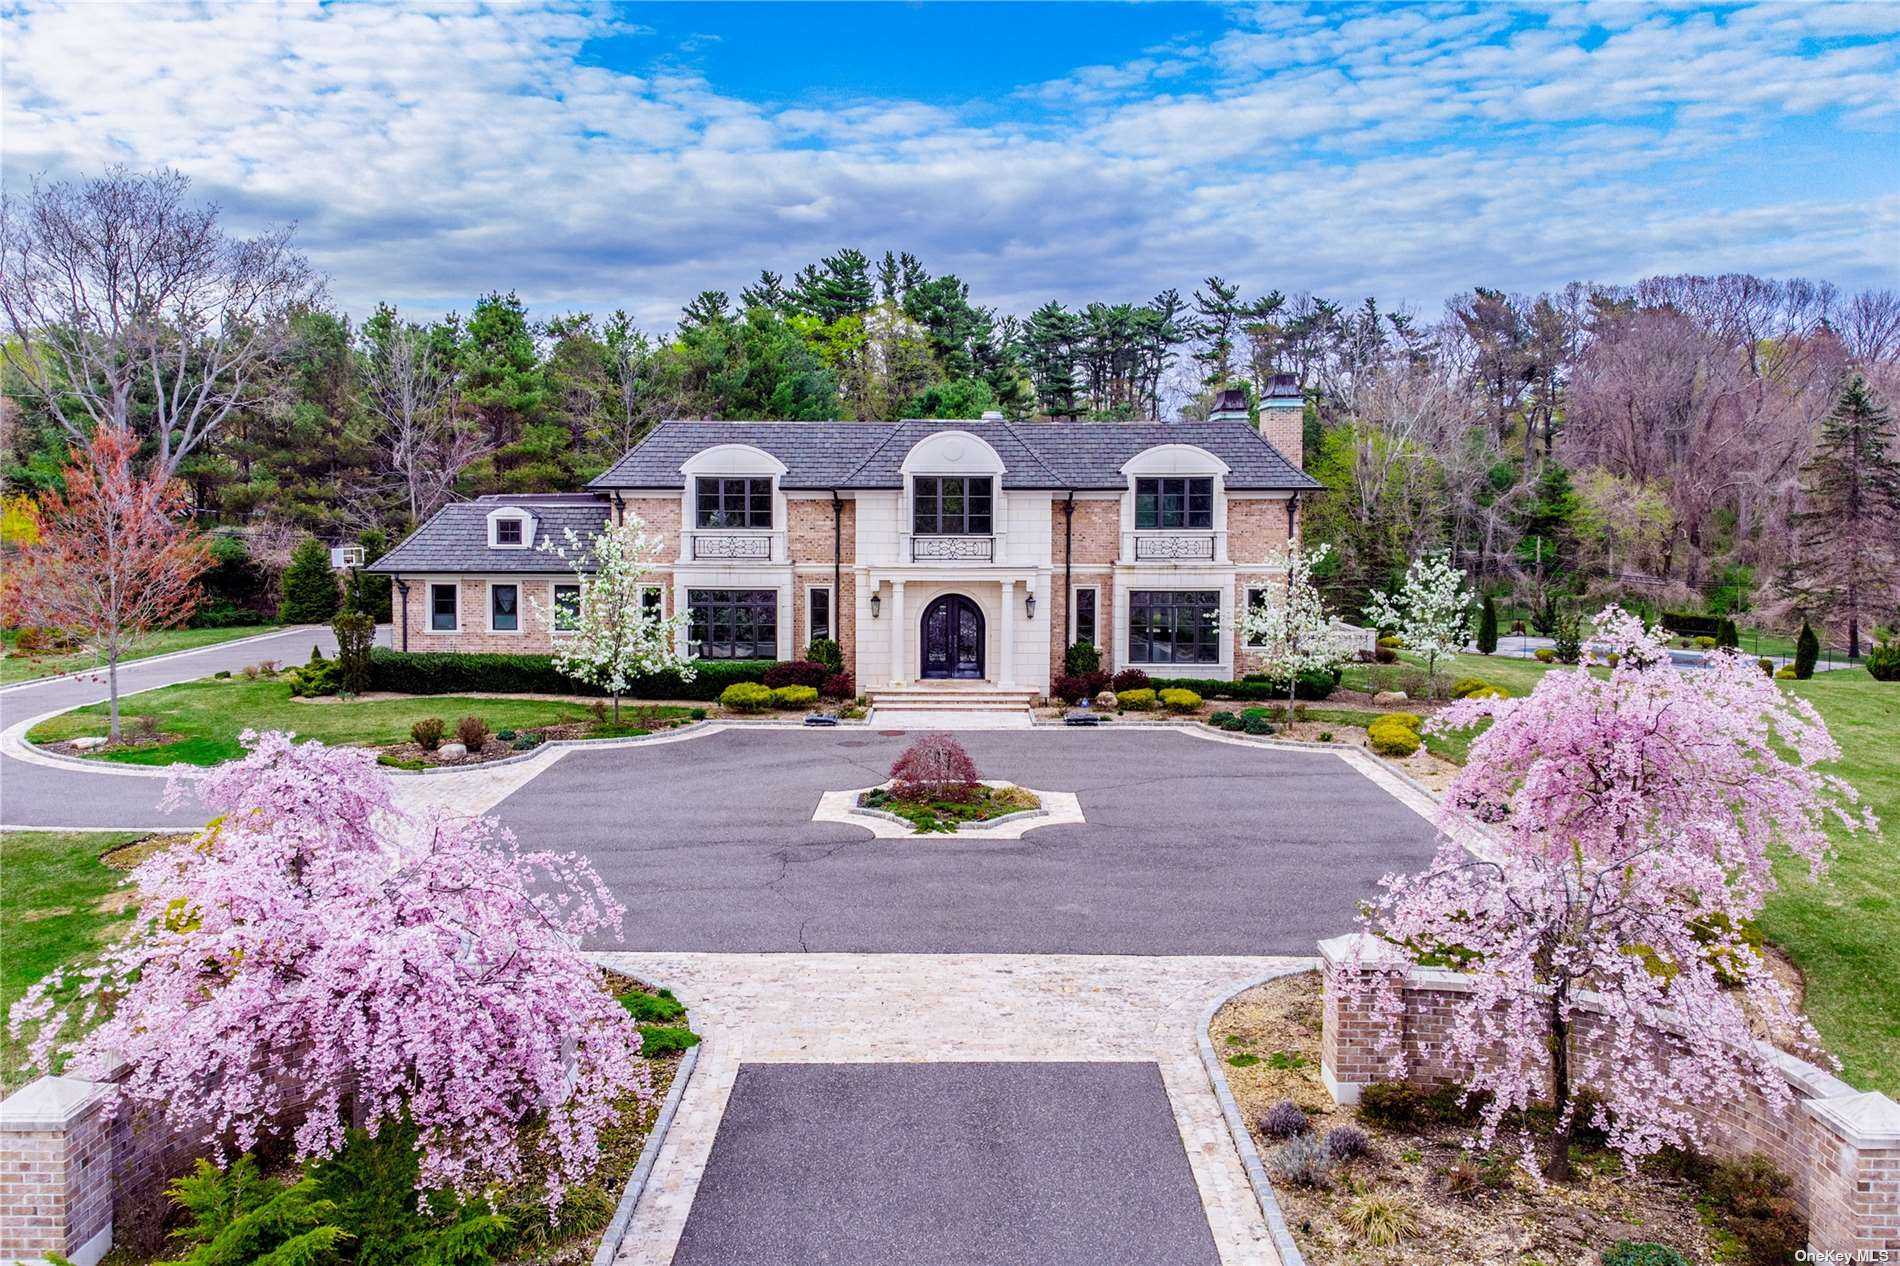 Masonry Colonial Built in 2015 in Old Westbury, A Well-known Community, With an Open Terrain.  Three Colleges/Universities Around and Kids Can Go To One of Long Island's Best School Districts - Jericho. Expanding More Than 2 Acres and Gate facing South. Offering Luxurious 7 bedrooms, 6.5 bathrooms, A 3-Car Garage, and a Generous shy 6,000 sq ft Living Space. Has Smart Home System, Floor Heating, Indoor elevator, Home Movie Theater, Gym, Wine Cellar, Heated Swimming Pool, and More. A Stunning and Magnificent Home to Own!